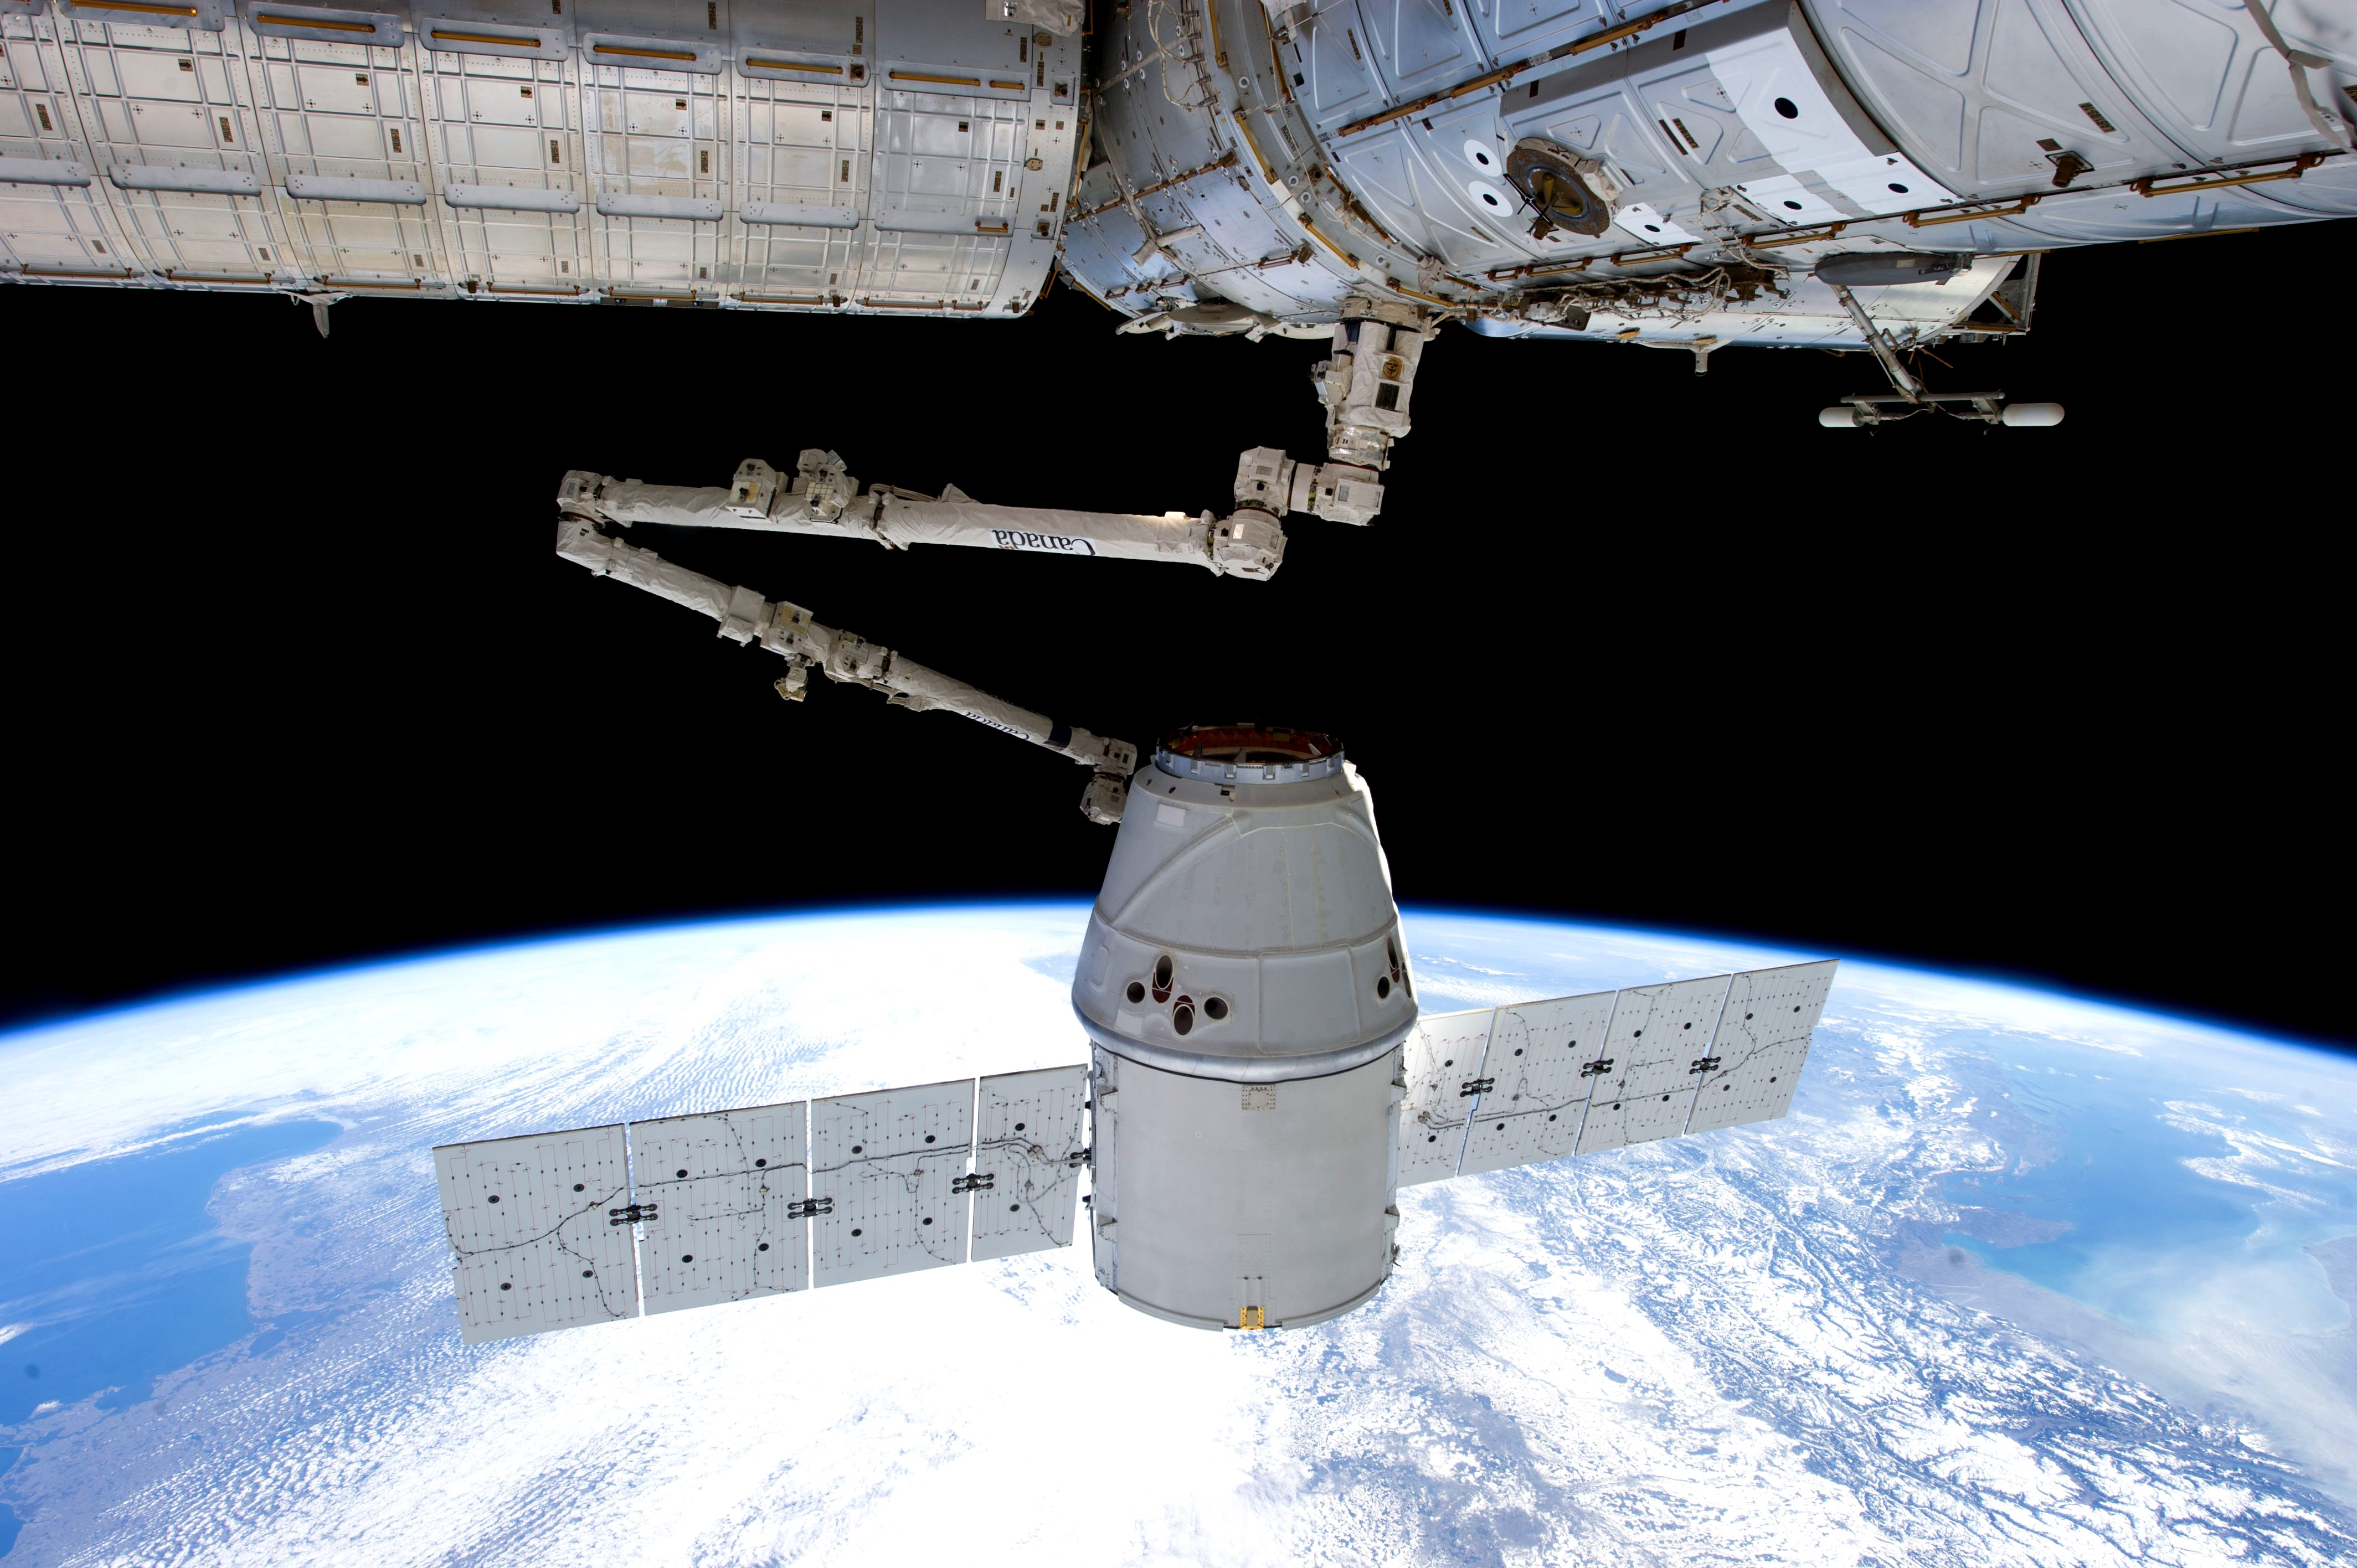 expedition 34 crew members aboard the international space station use a robotic arm to capture a spacex dragon capsule delivering supplies on march 3 2013